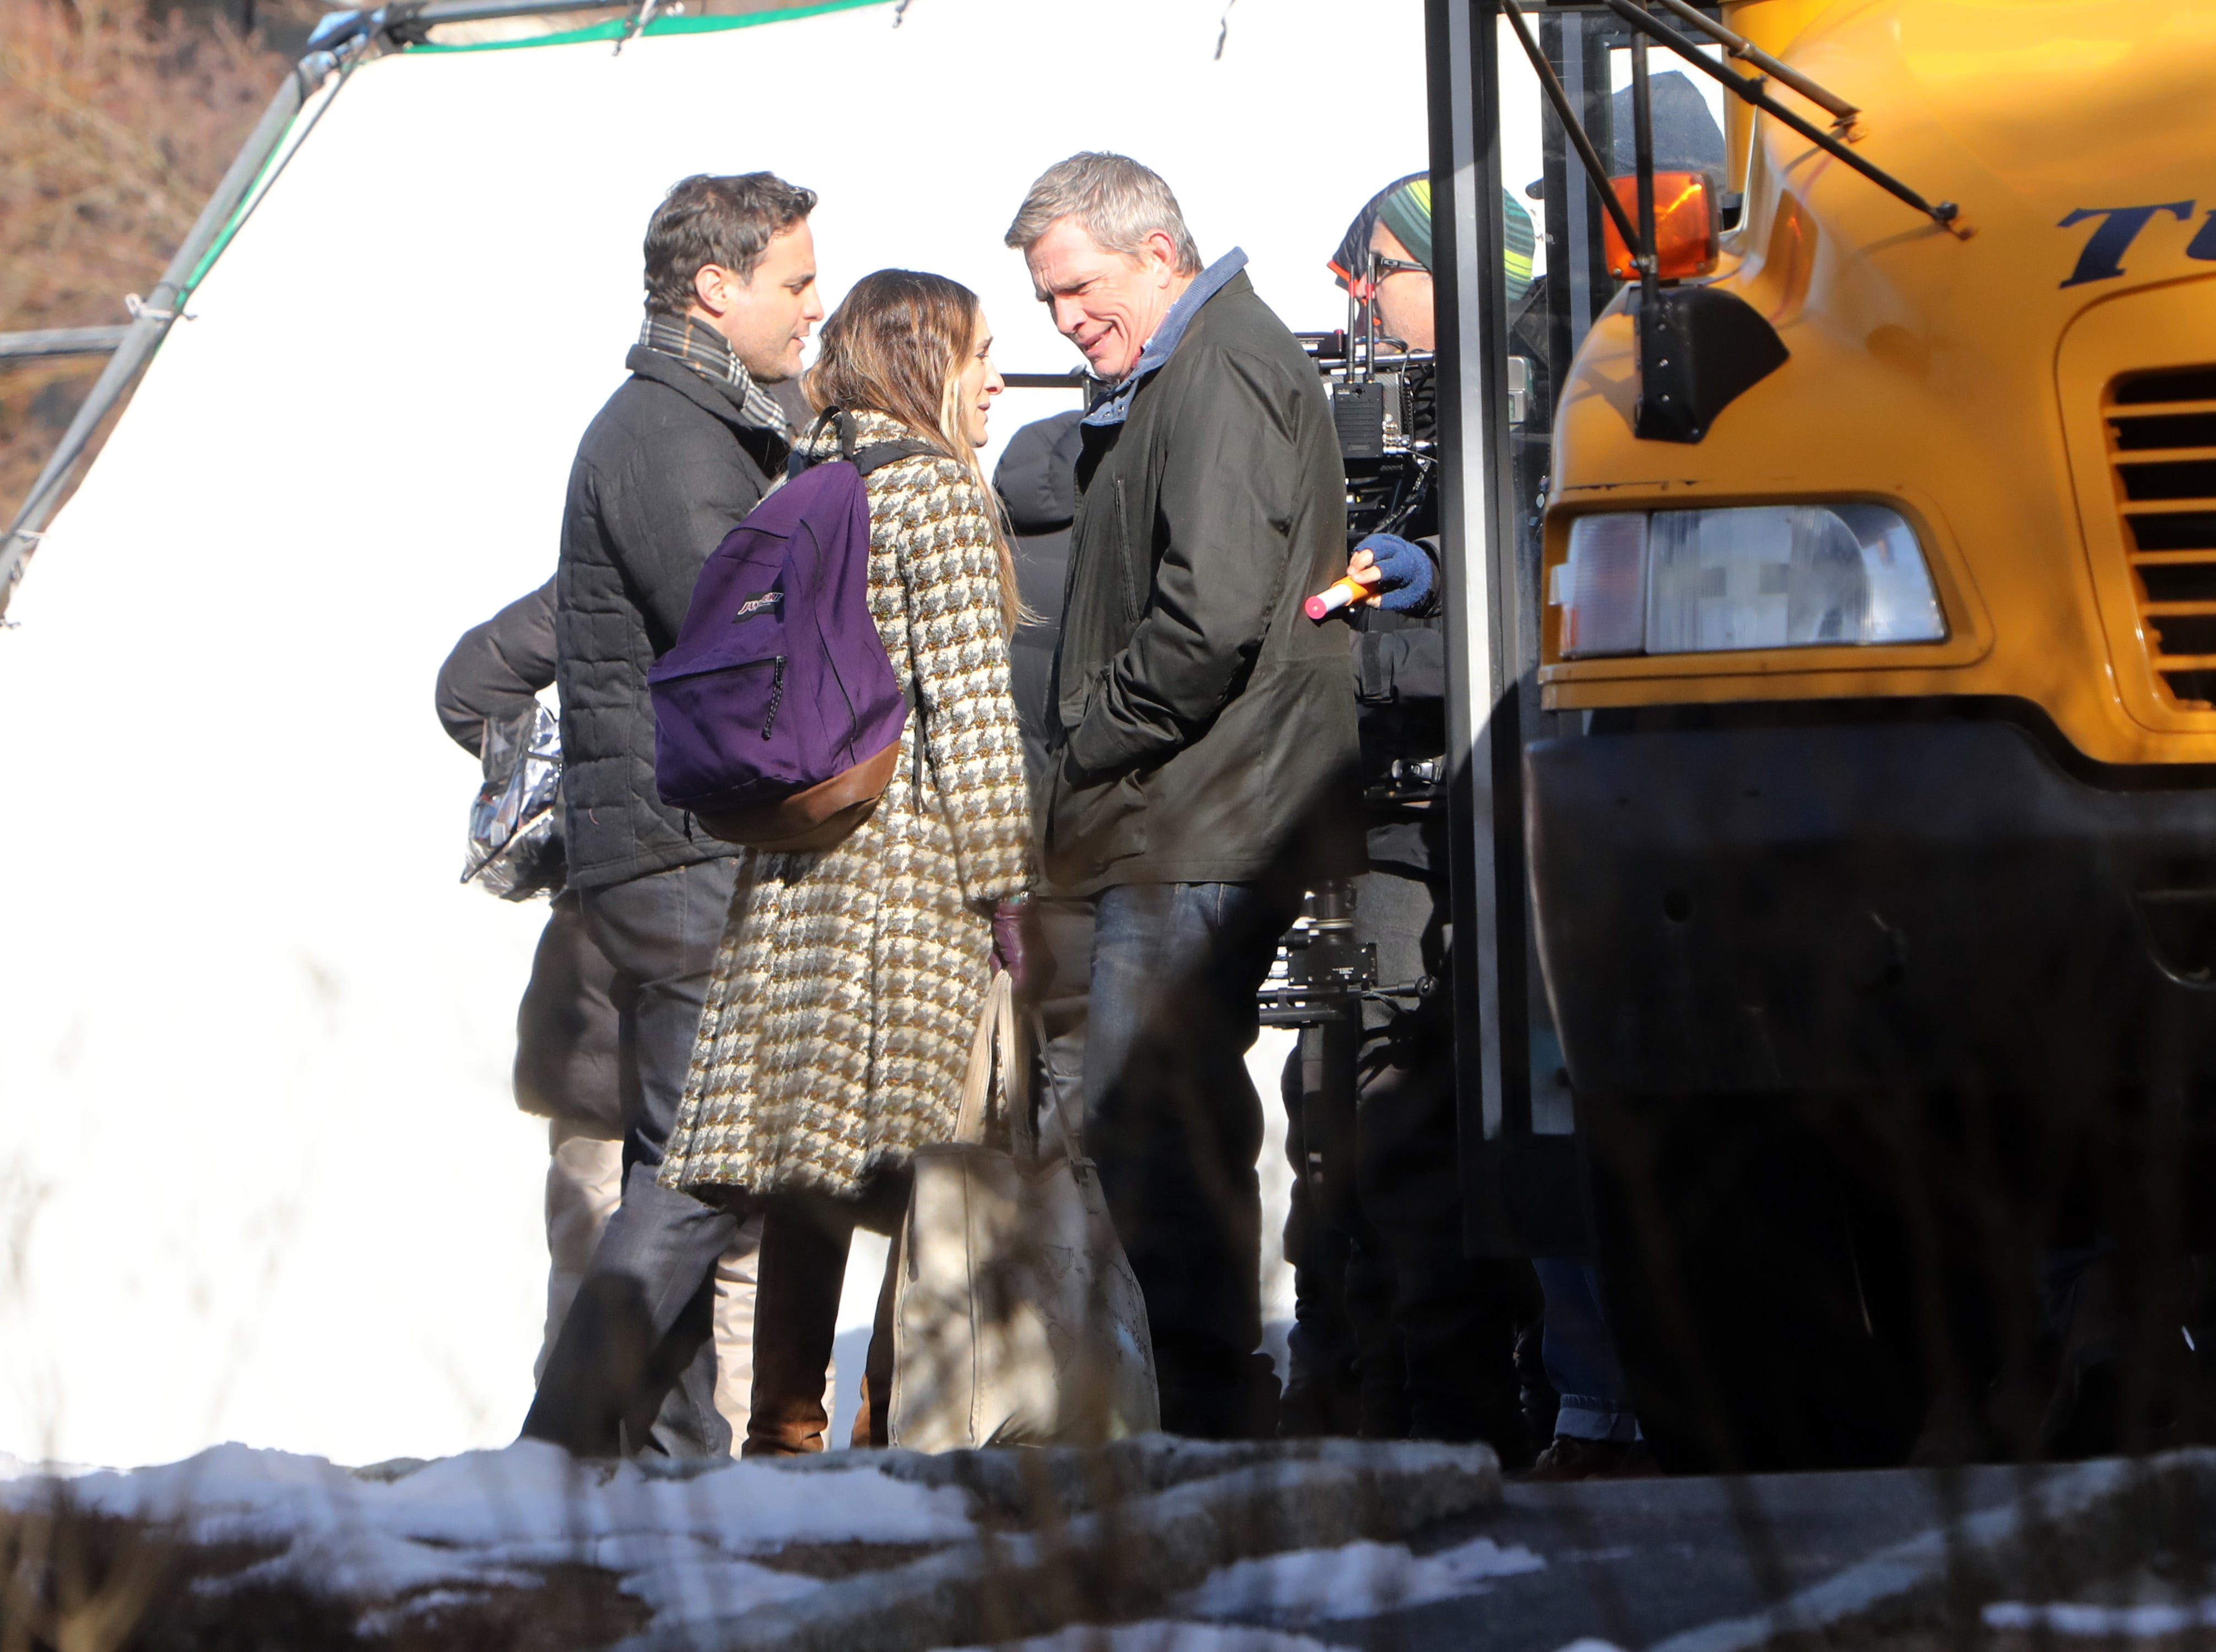 """Sarah Jessica Parker and Thomas Haden Church on set to film a scene for """"Divorce,"""" an HBO series, Feb. 19, 2019 near Hastings High School."""